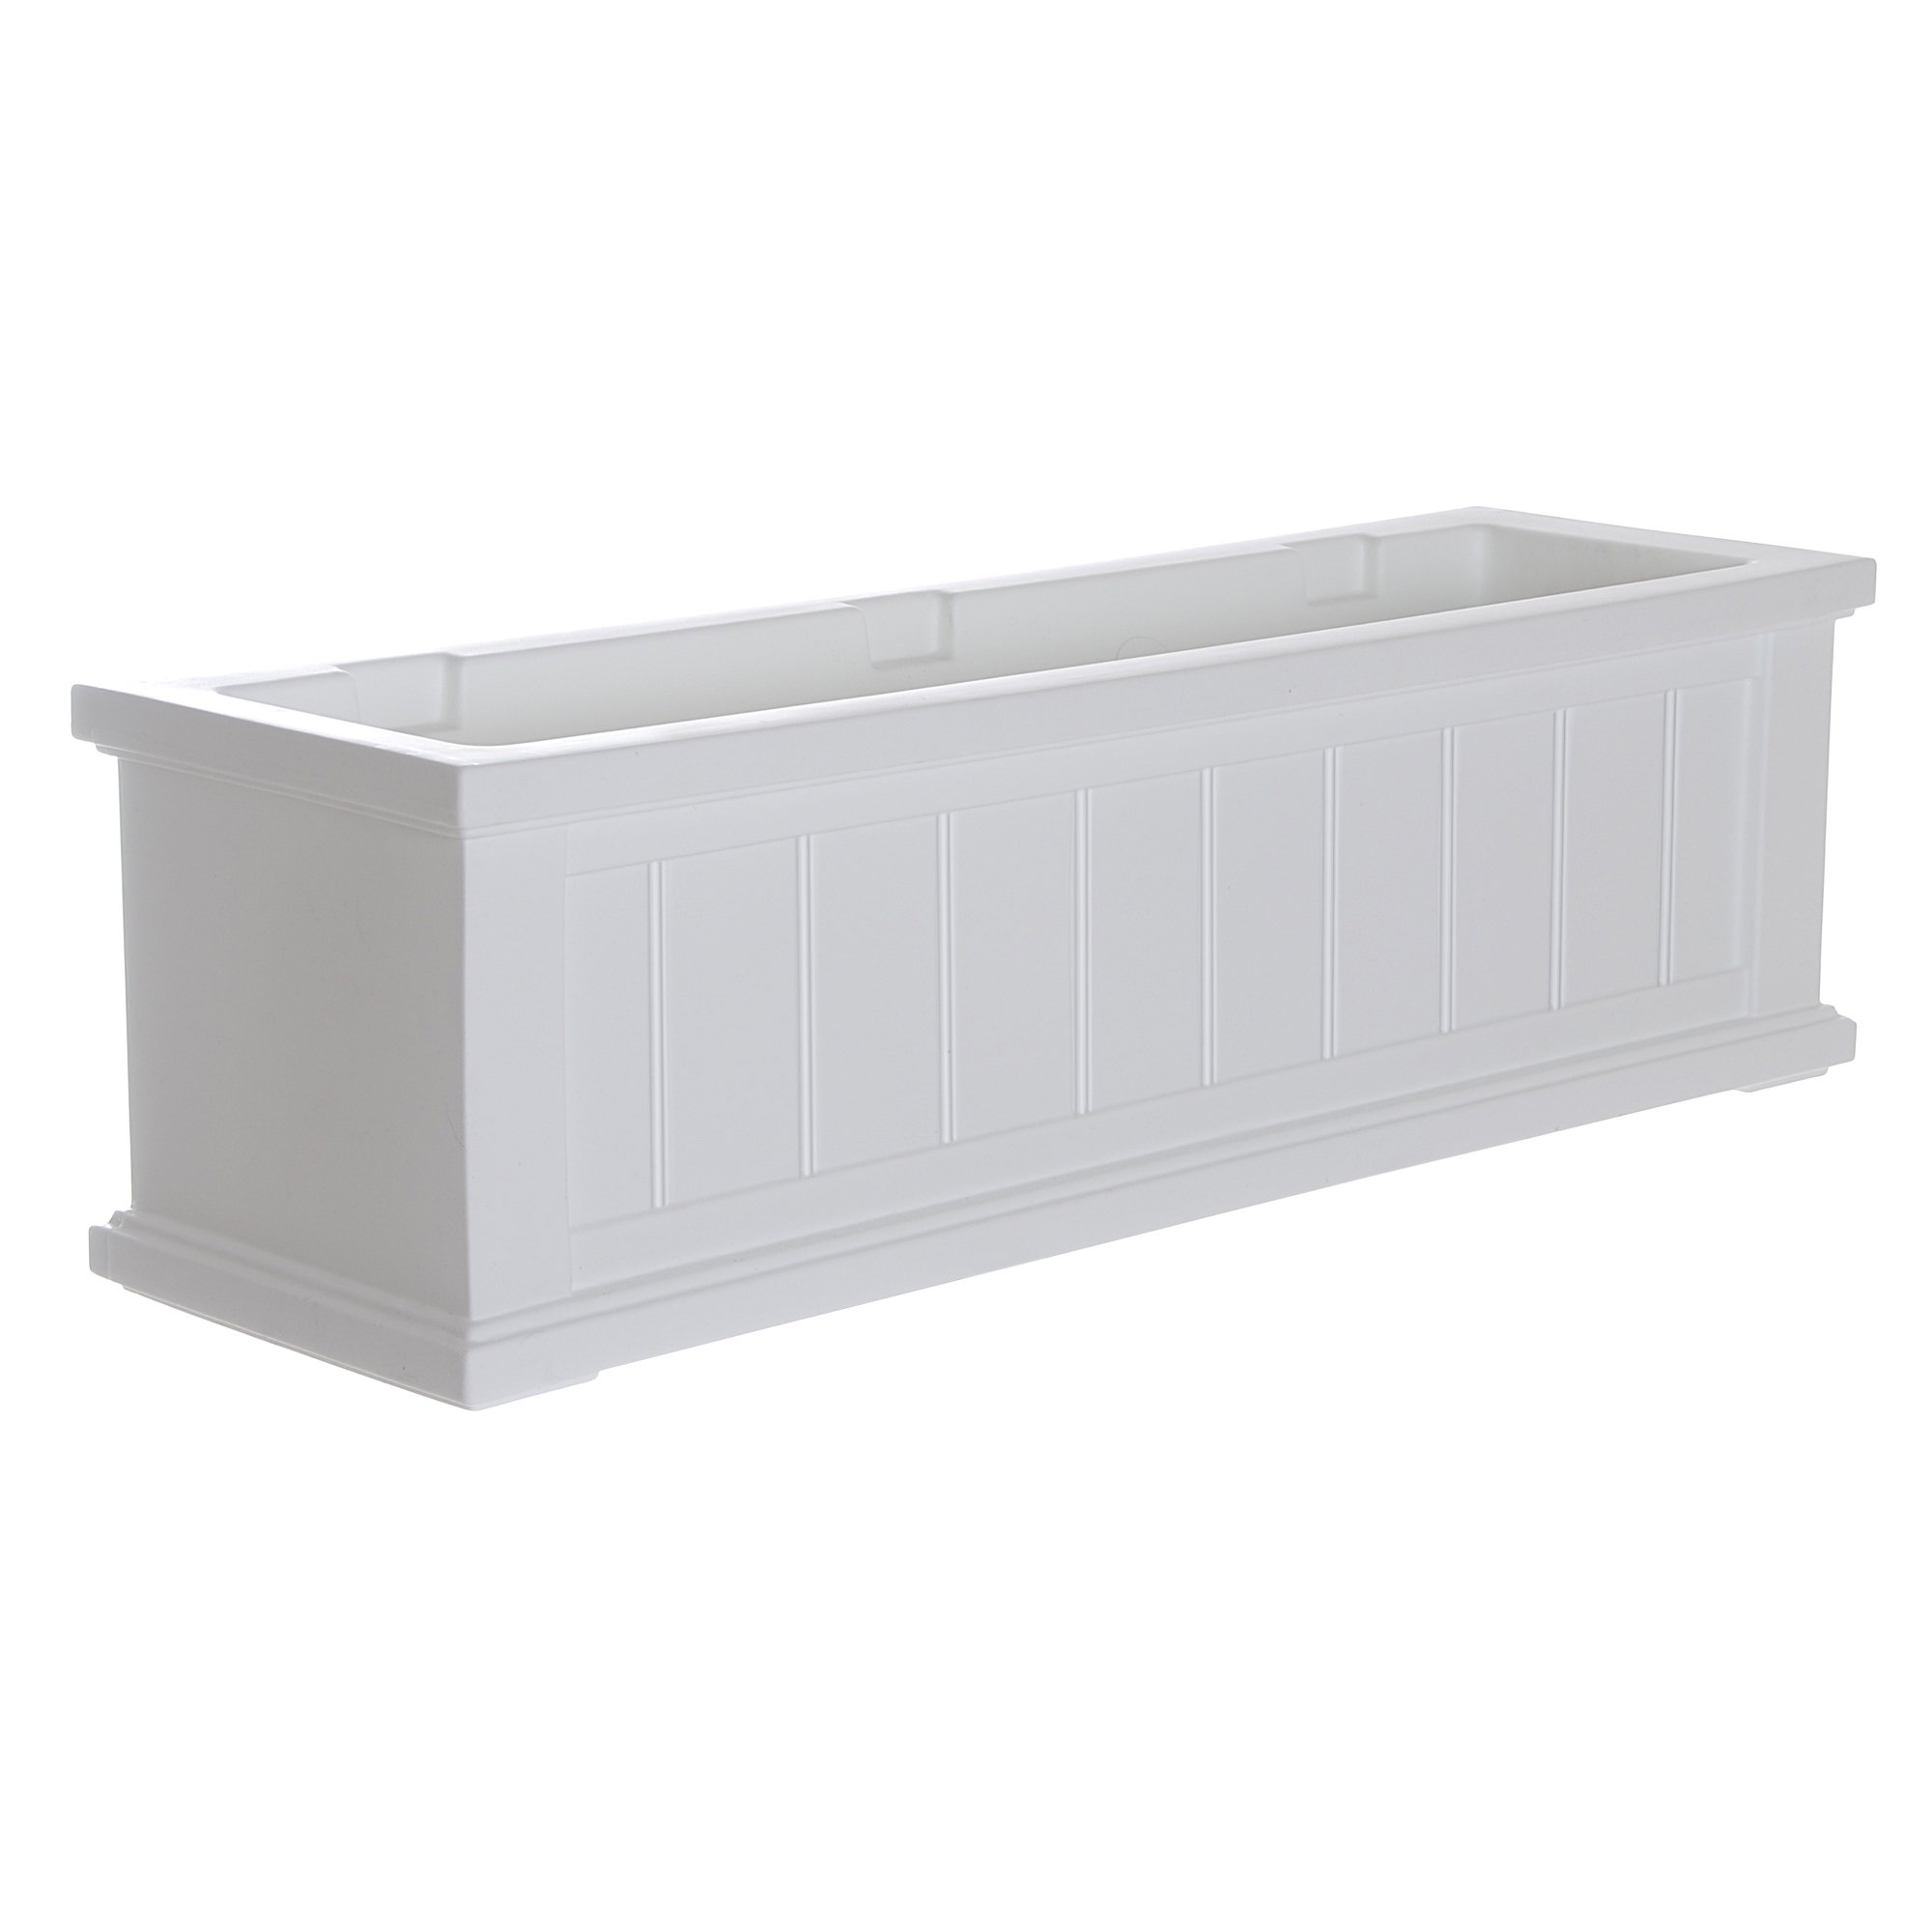 Mayne 4840-W Cape Cod Polyethylene Window Box, 3' , White by Mayne